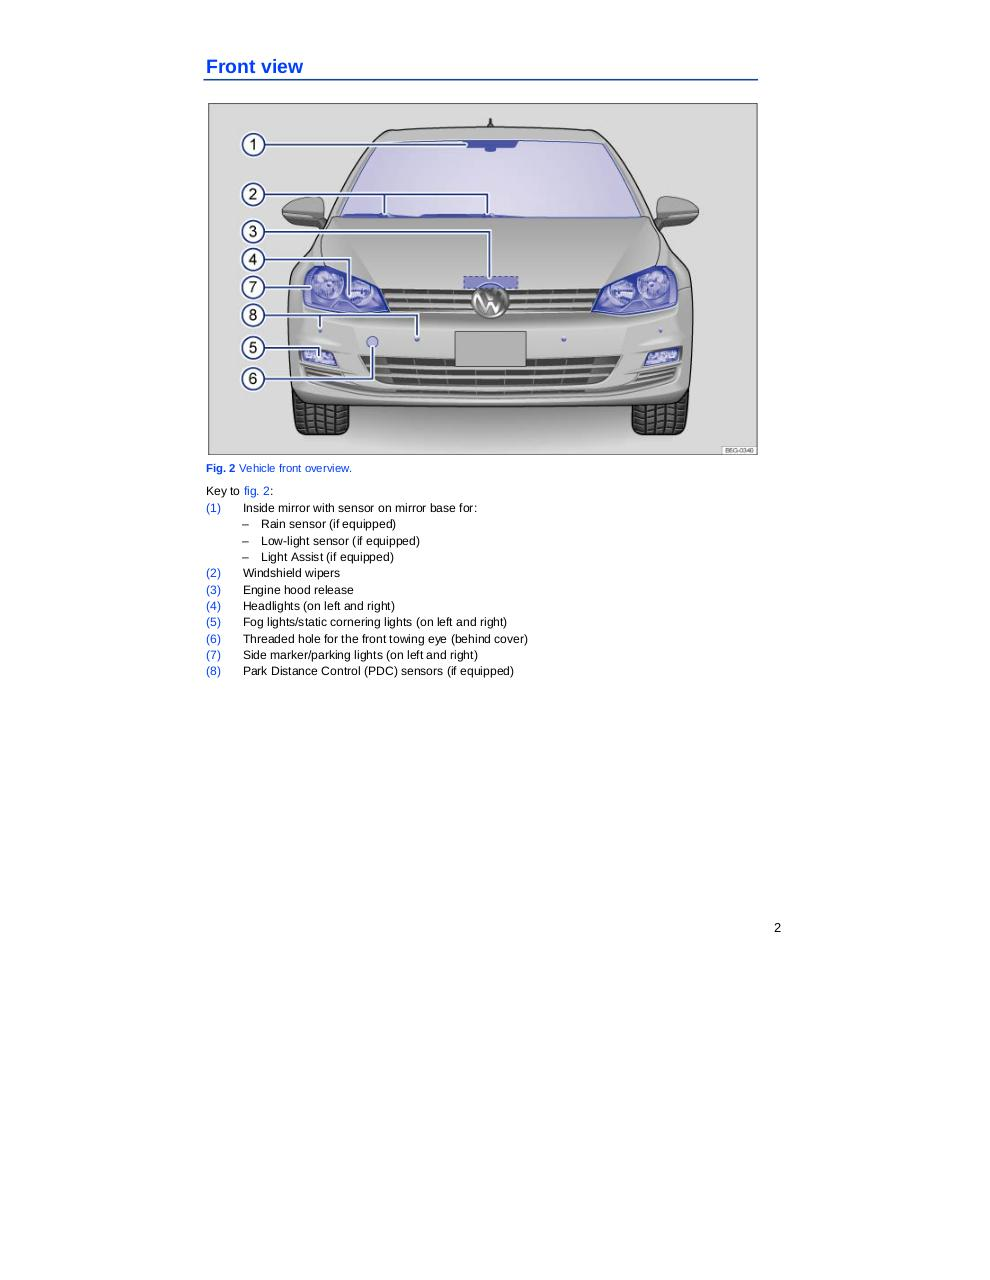 Golf Mk7 2014 Owners Manual.pdf - page 2/402